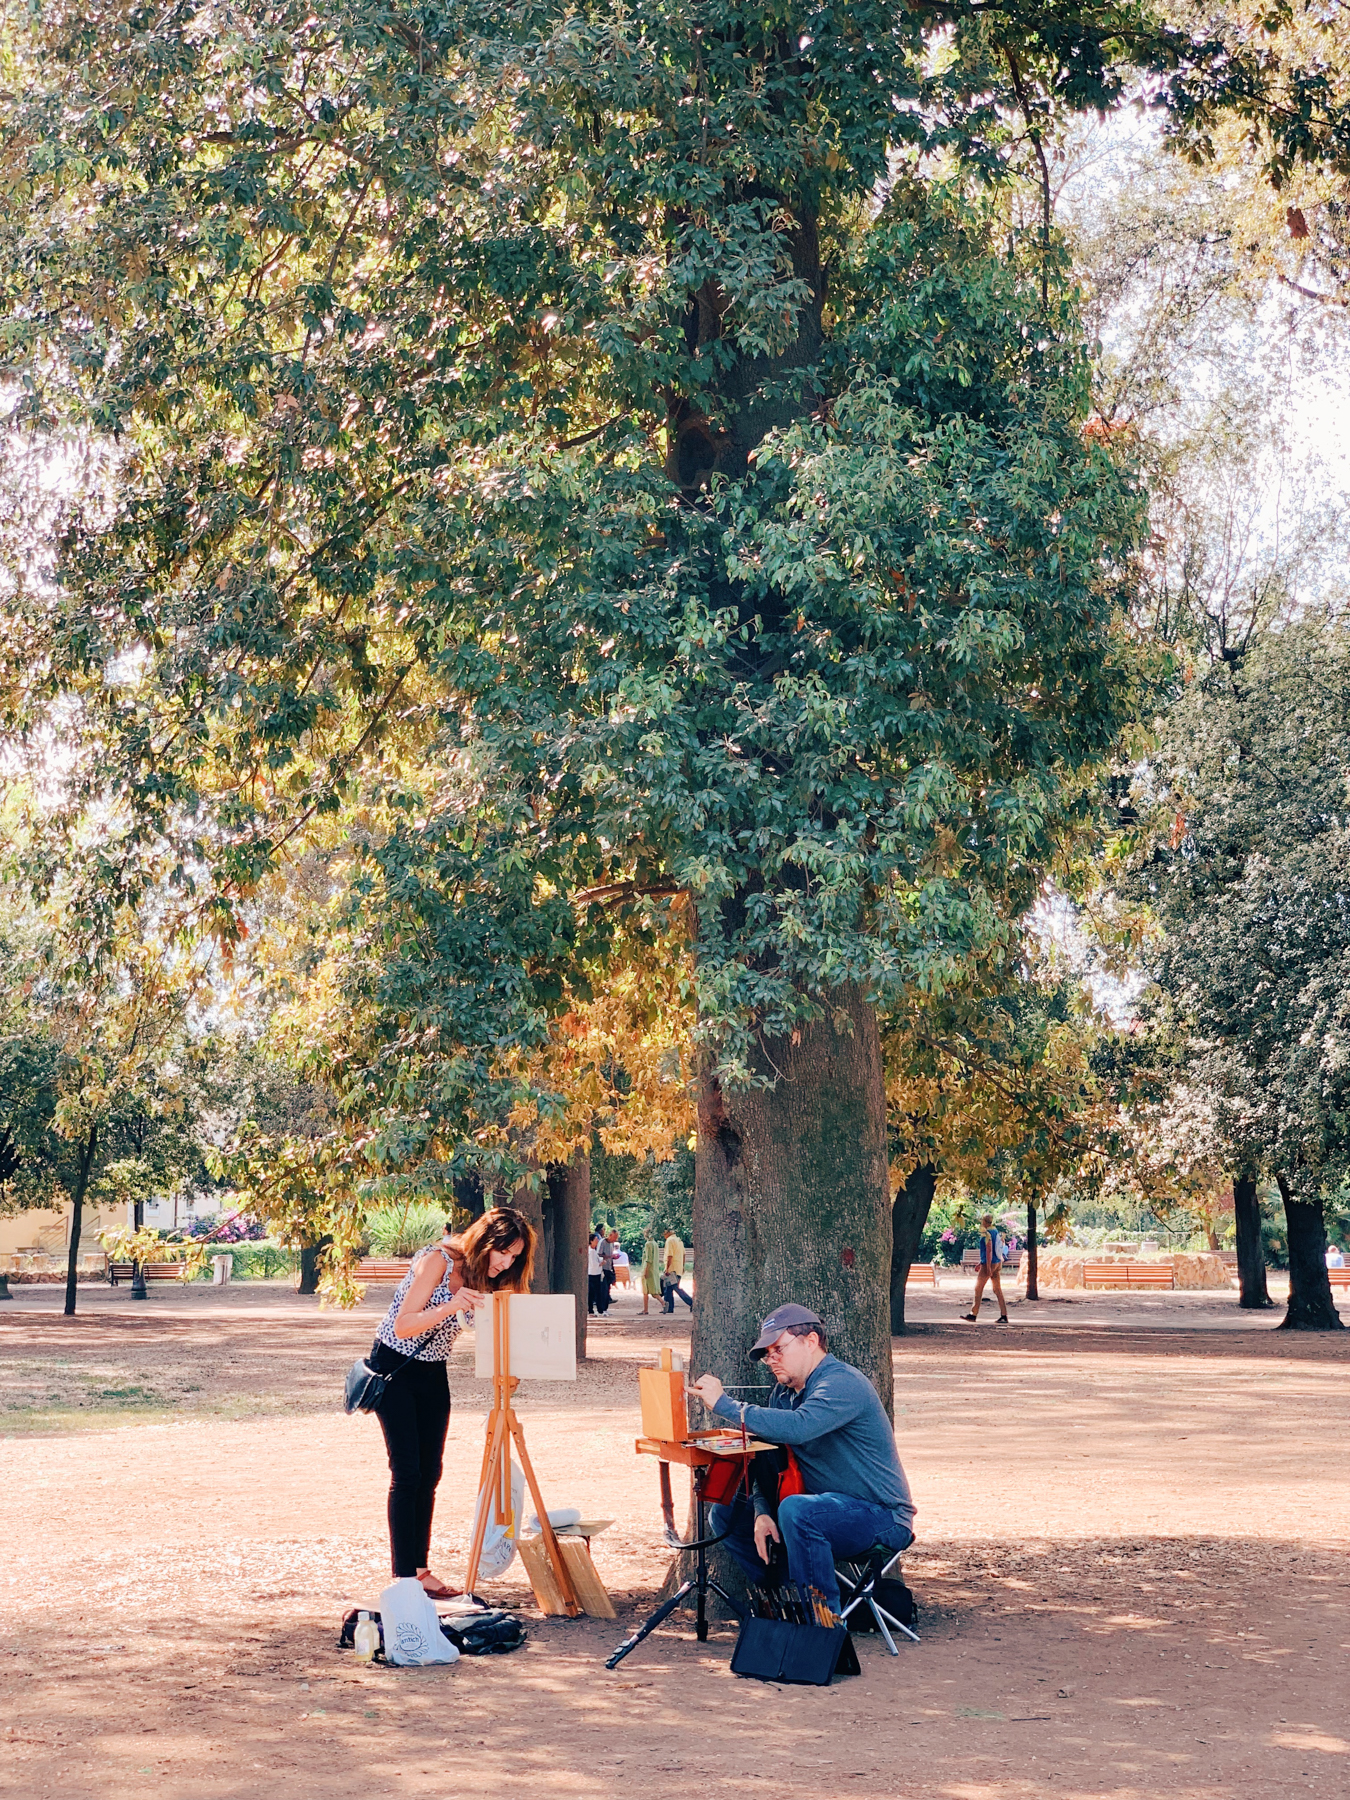 Painters setting up in Villa Borghese.